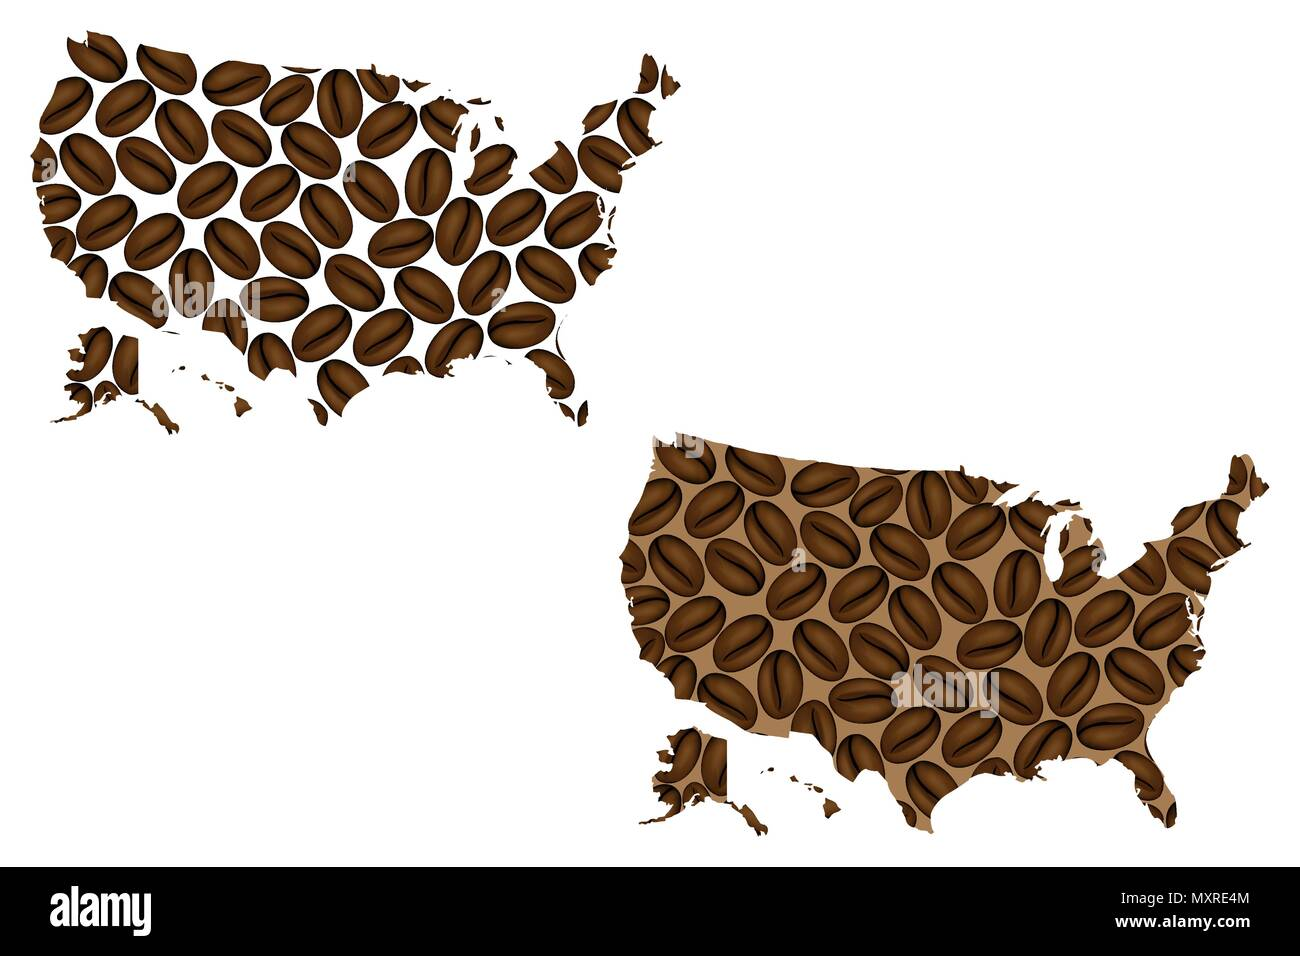 United States of America -  map of coffee bean,  United States (U.S.),(USA) map made of coffee beans, - Stock Vector